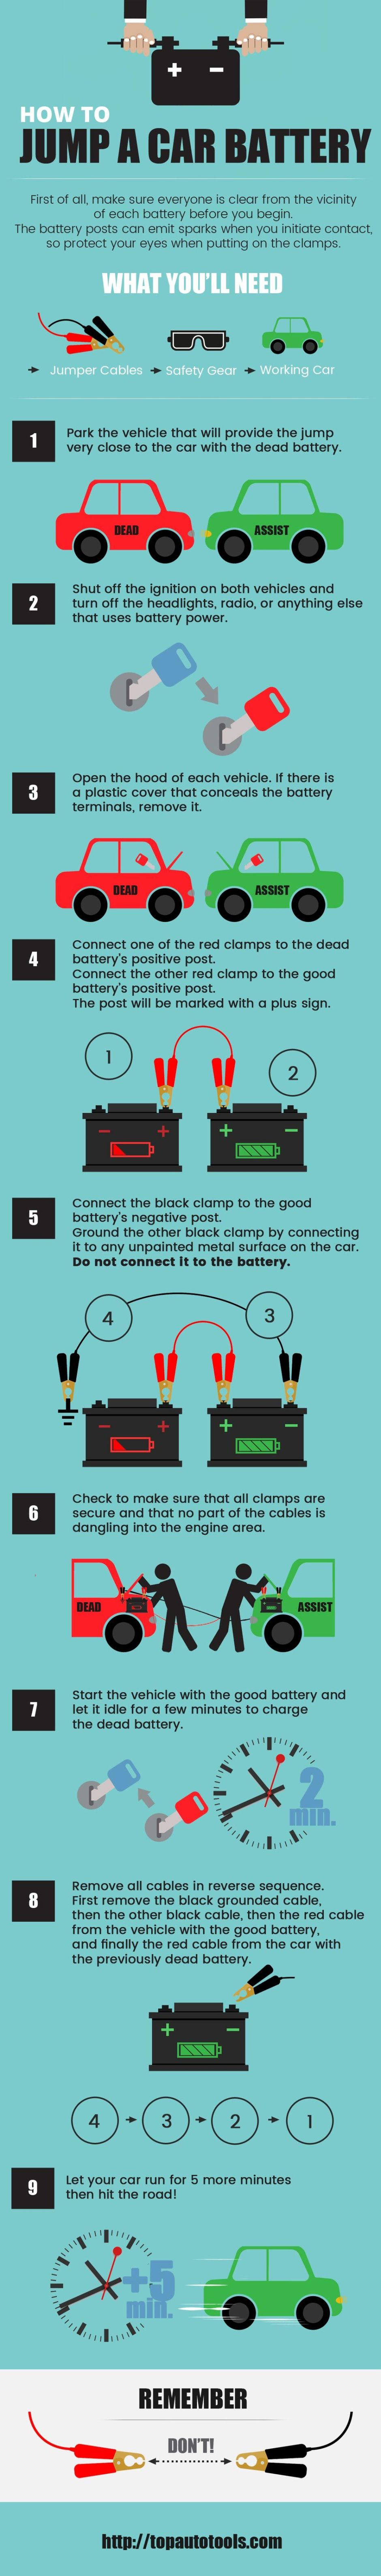 Simple Steps to Starting a Car with Jumper Cables